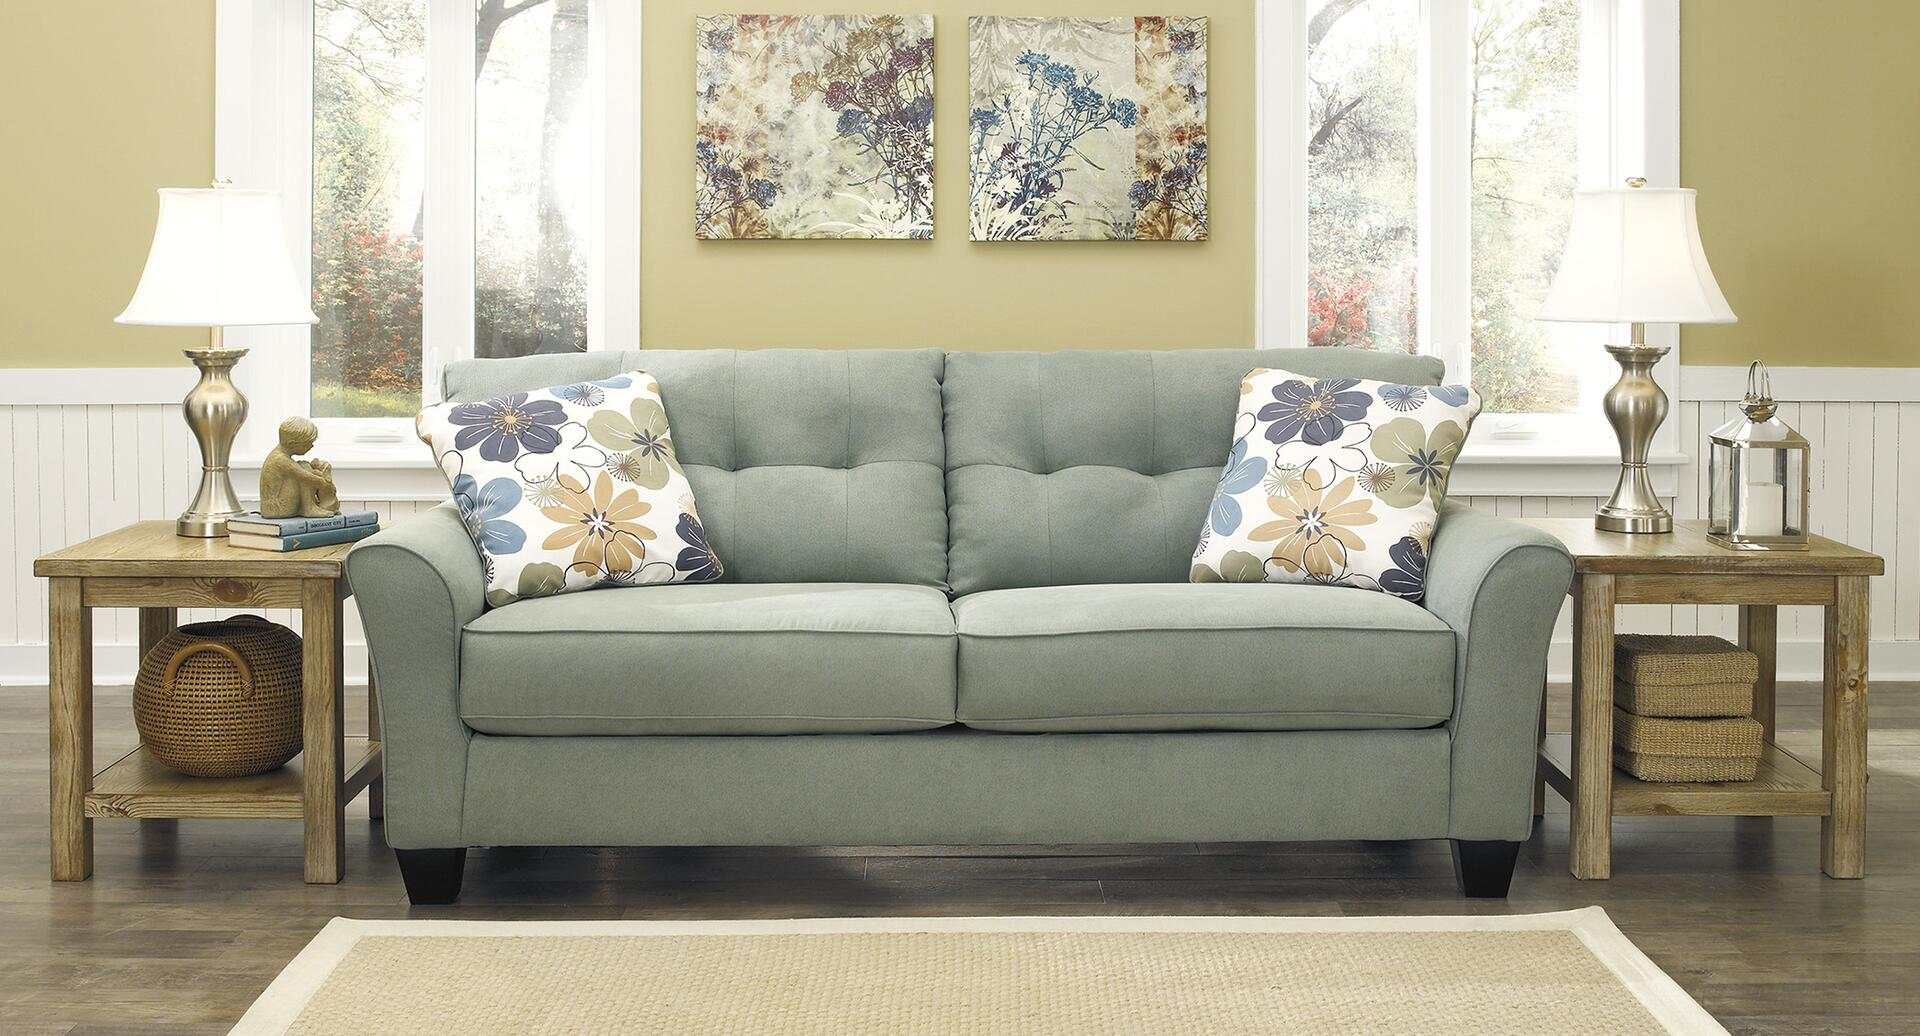 ... Signature Design By Ashley Kylee Sofa Room View ... Part 56